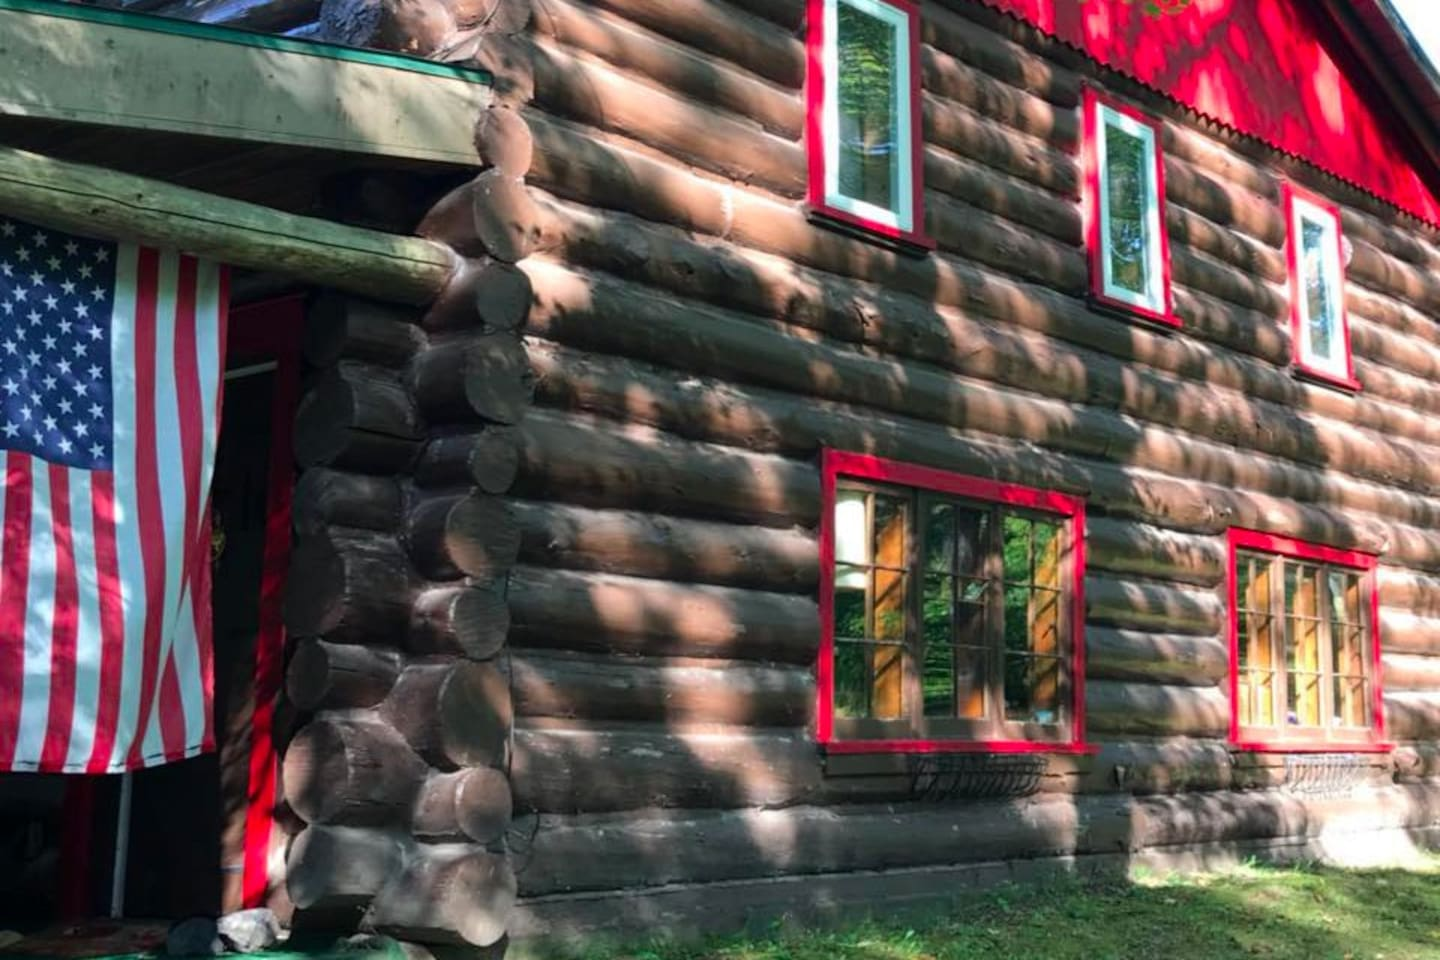 Great Place for all types of travelers. Black Dog Lodge is the place to be in the UP!